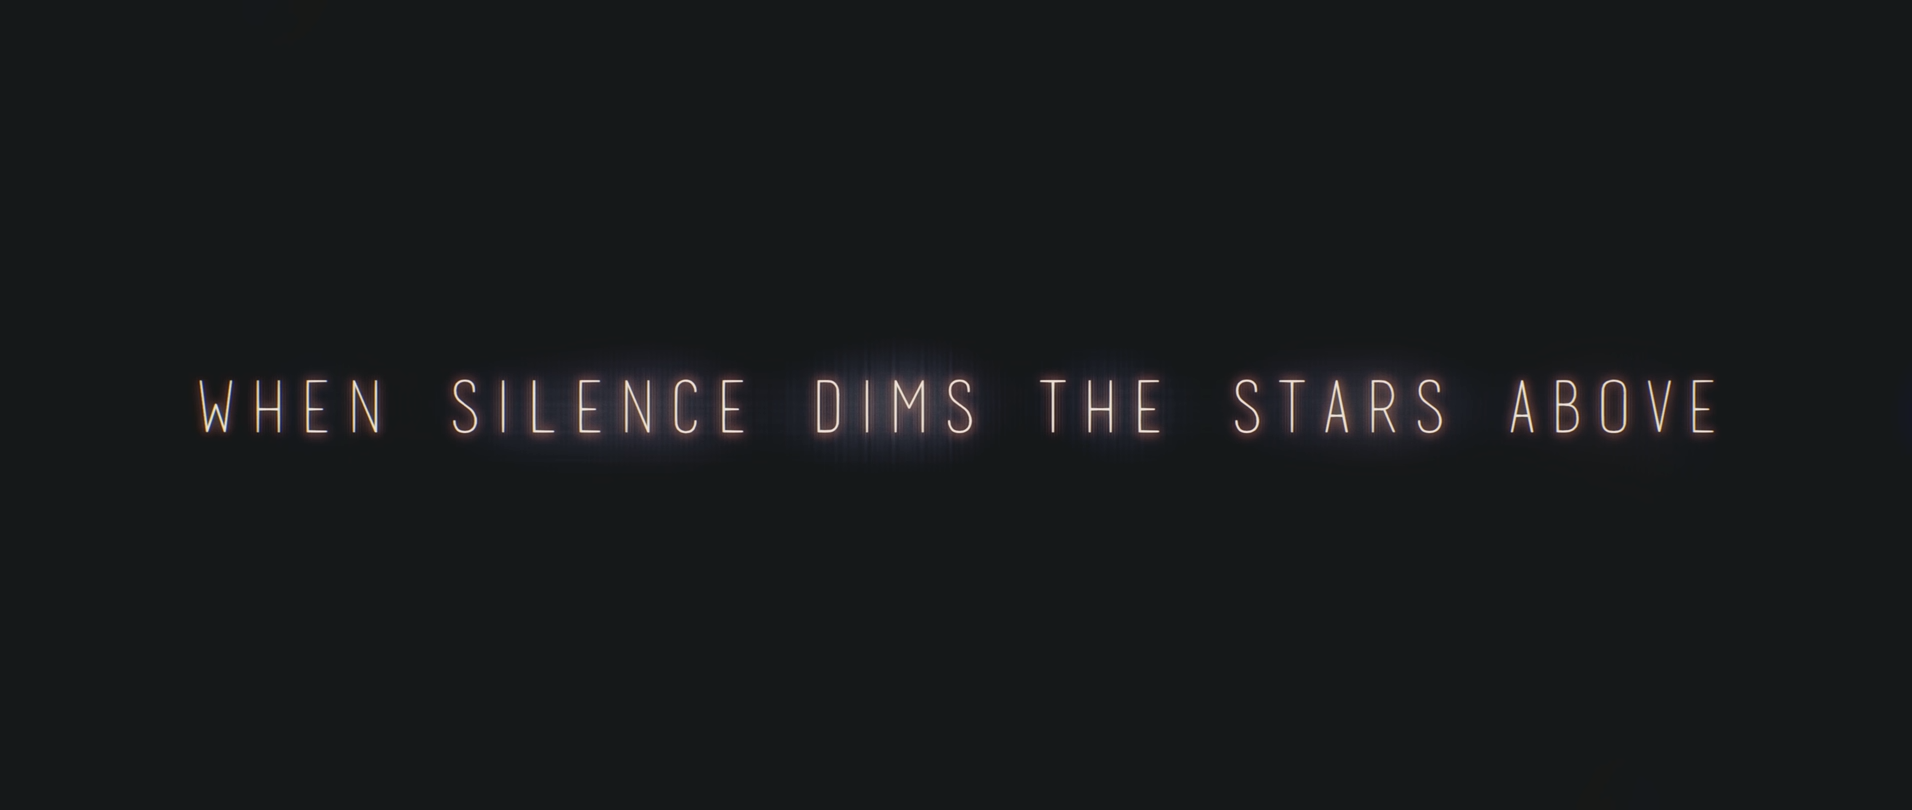 When Silence Dims The Stars Above